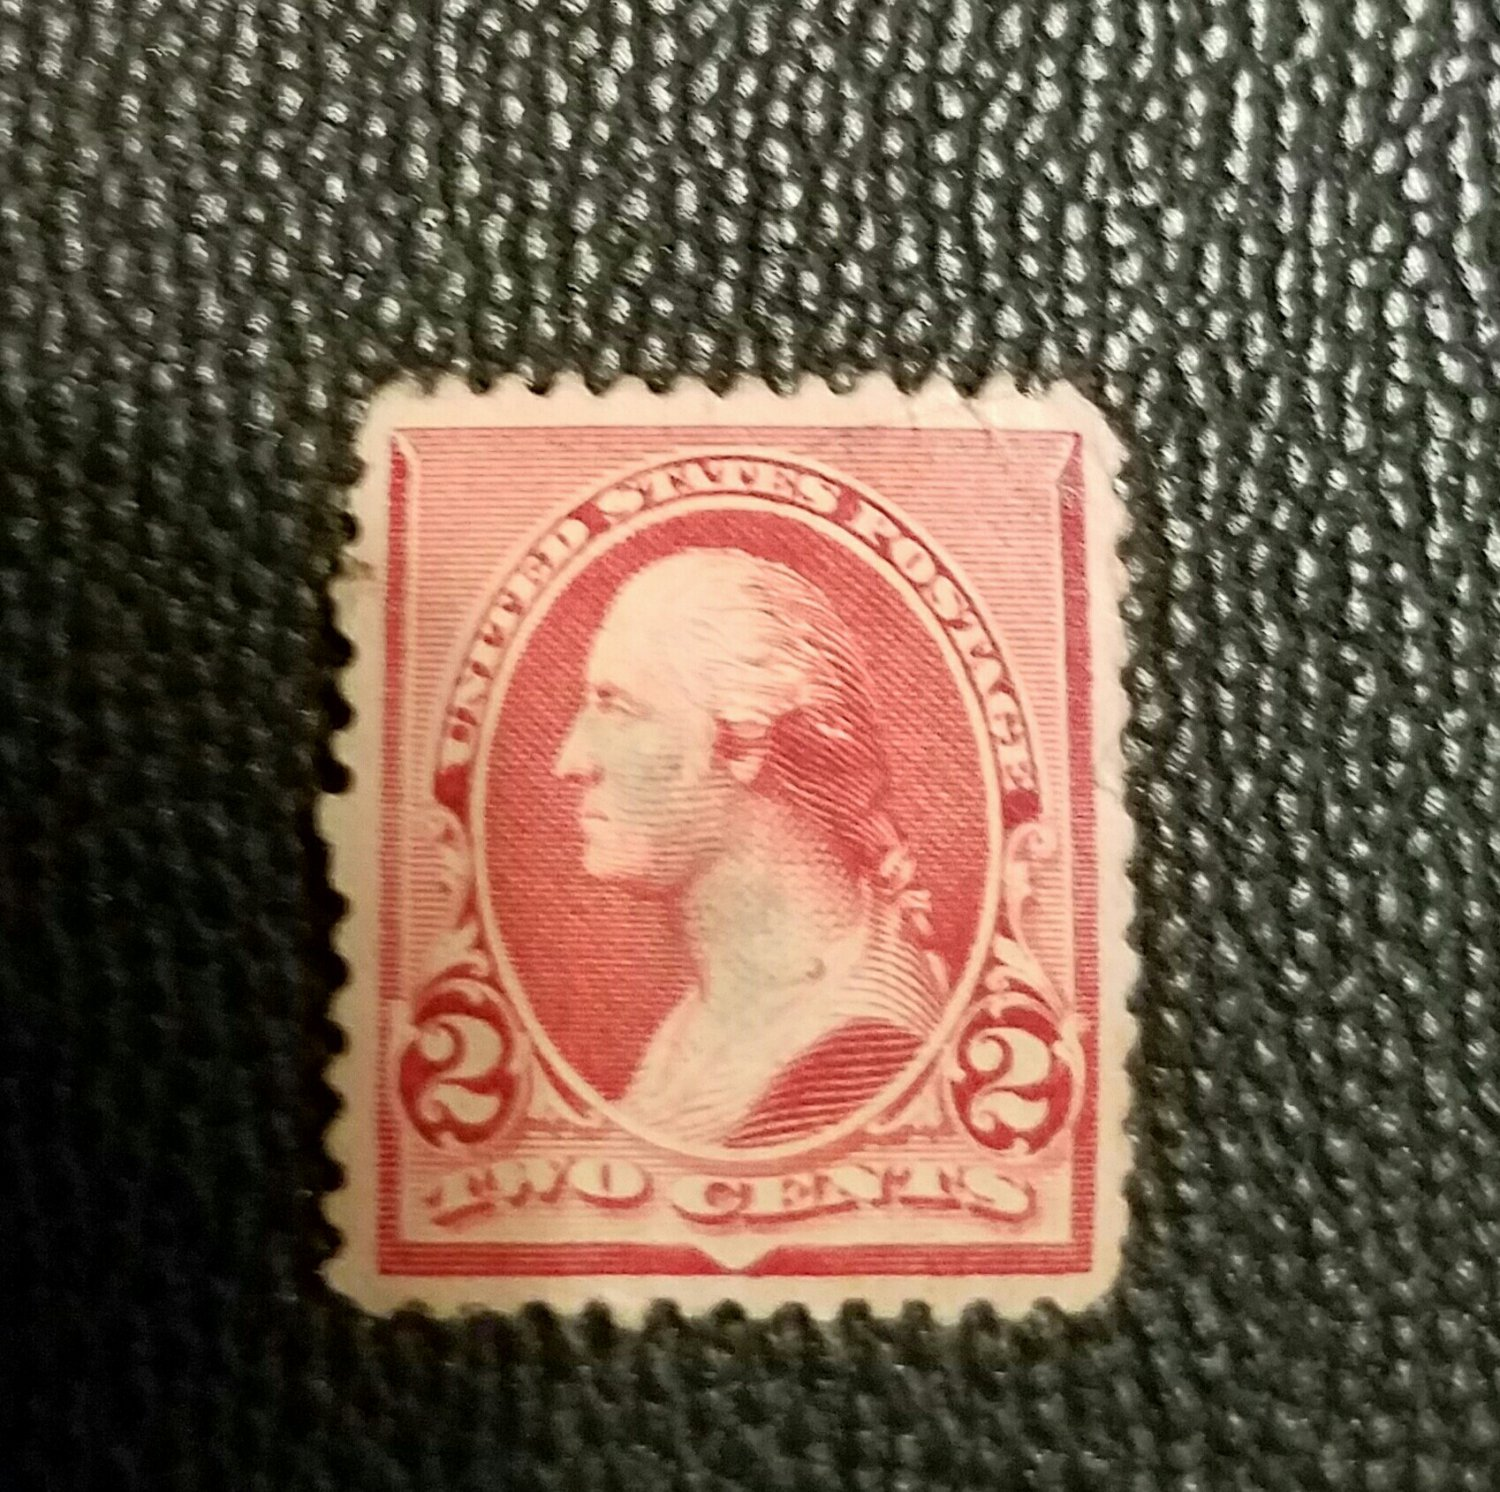 Washington 2¢ Stamp